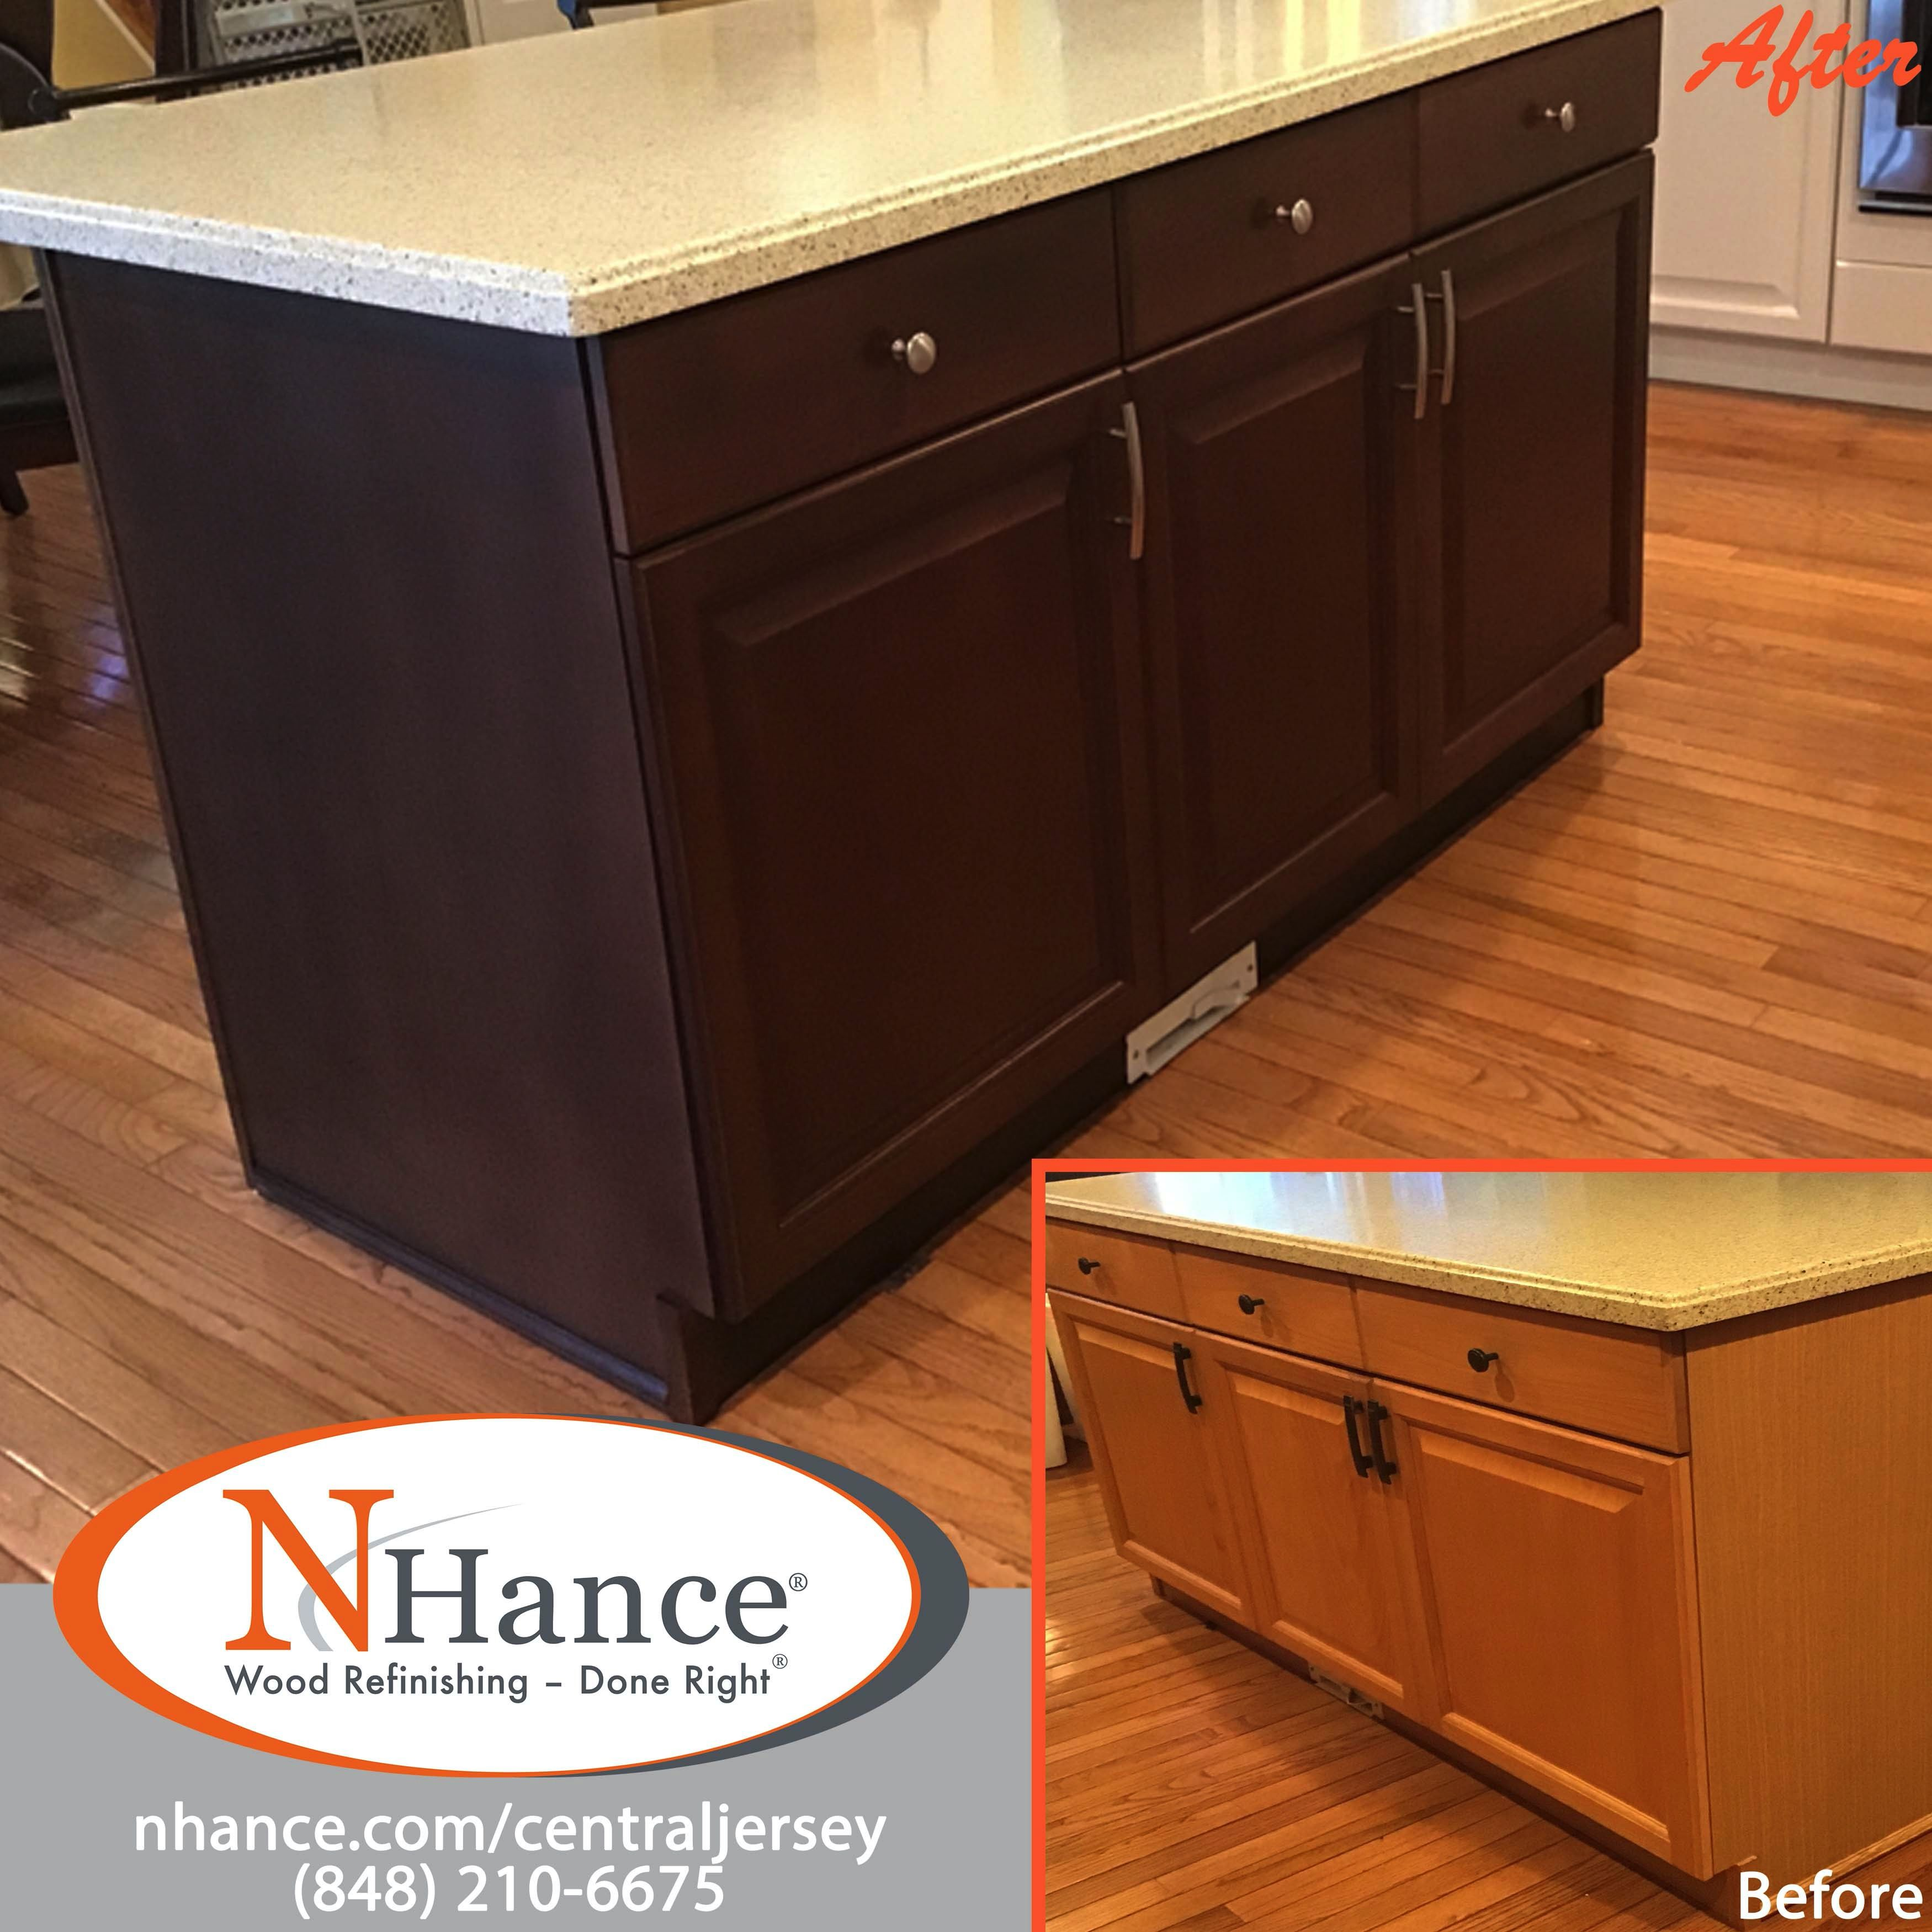 N Hance Can Make Your Cabinets Darker In 2020 Wood Refinishing Refinishing Cabinets Kitchen Projects